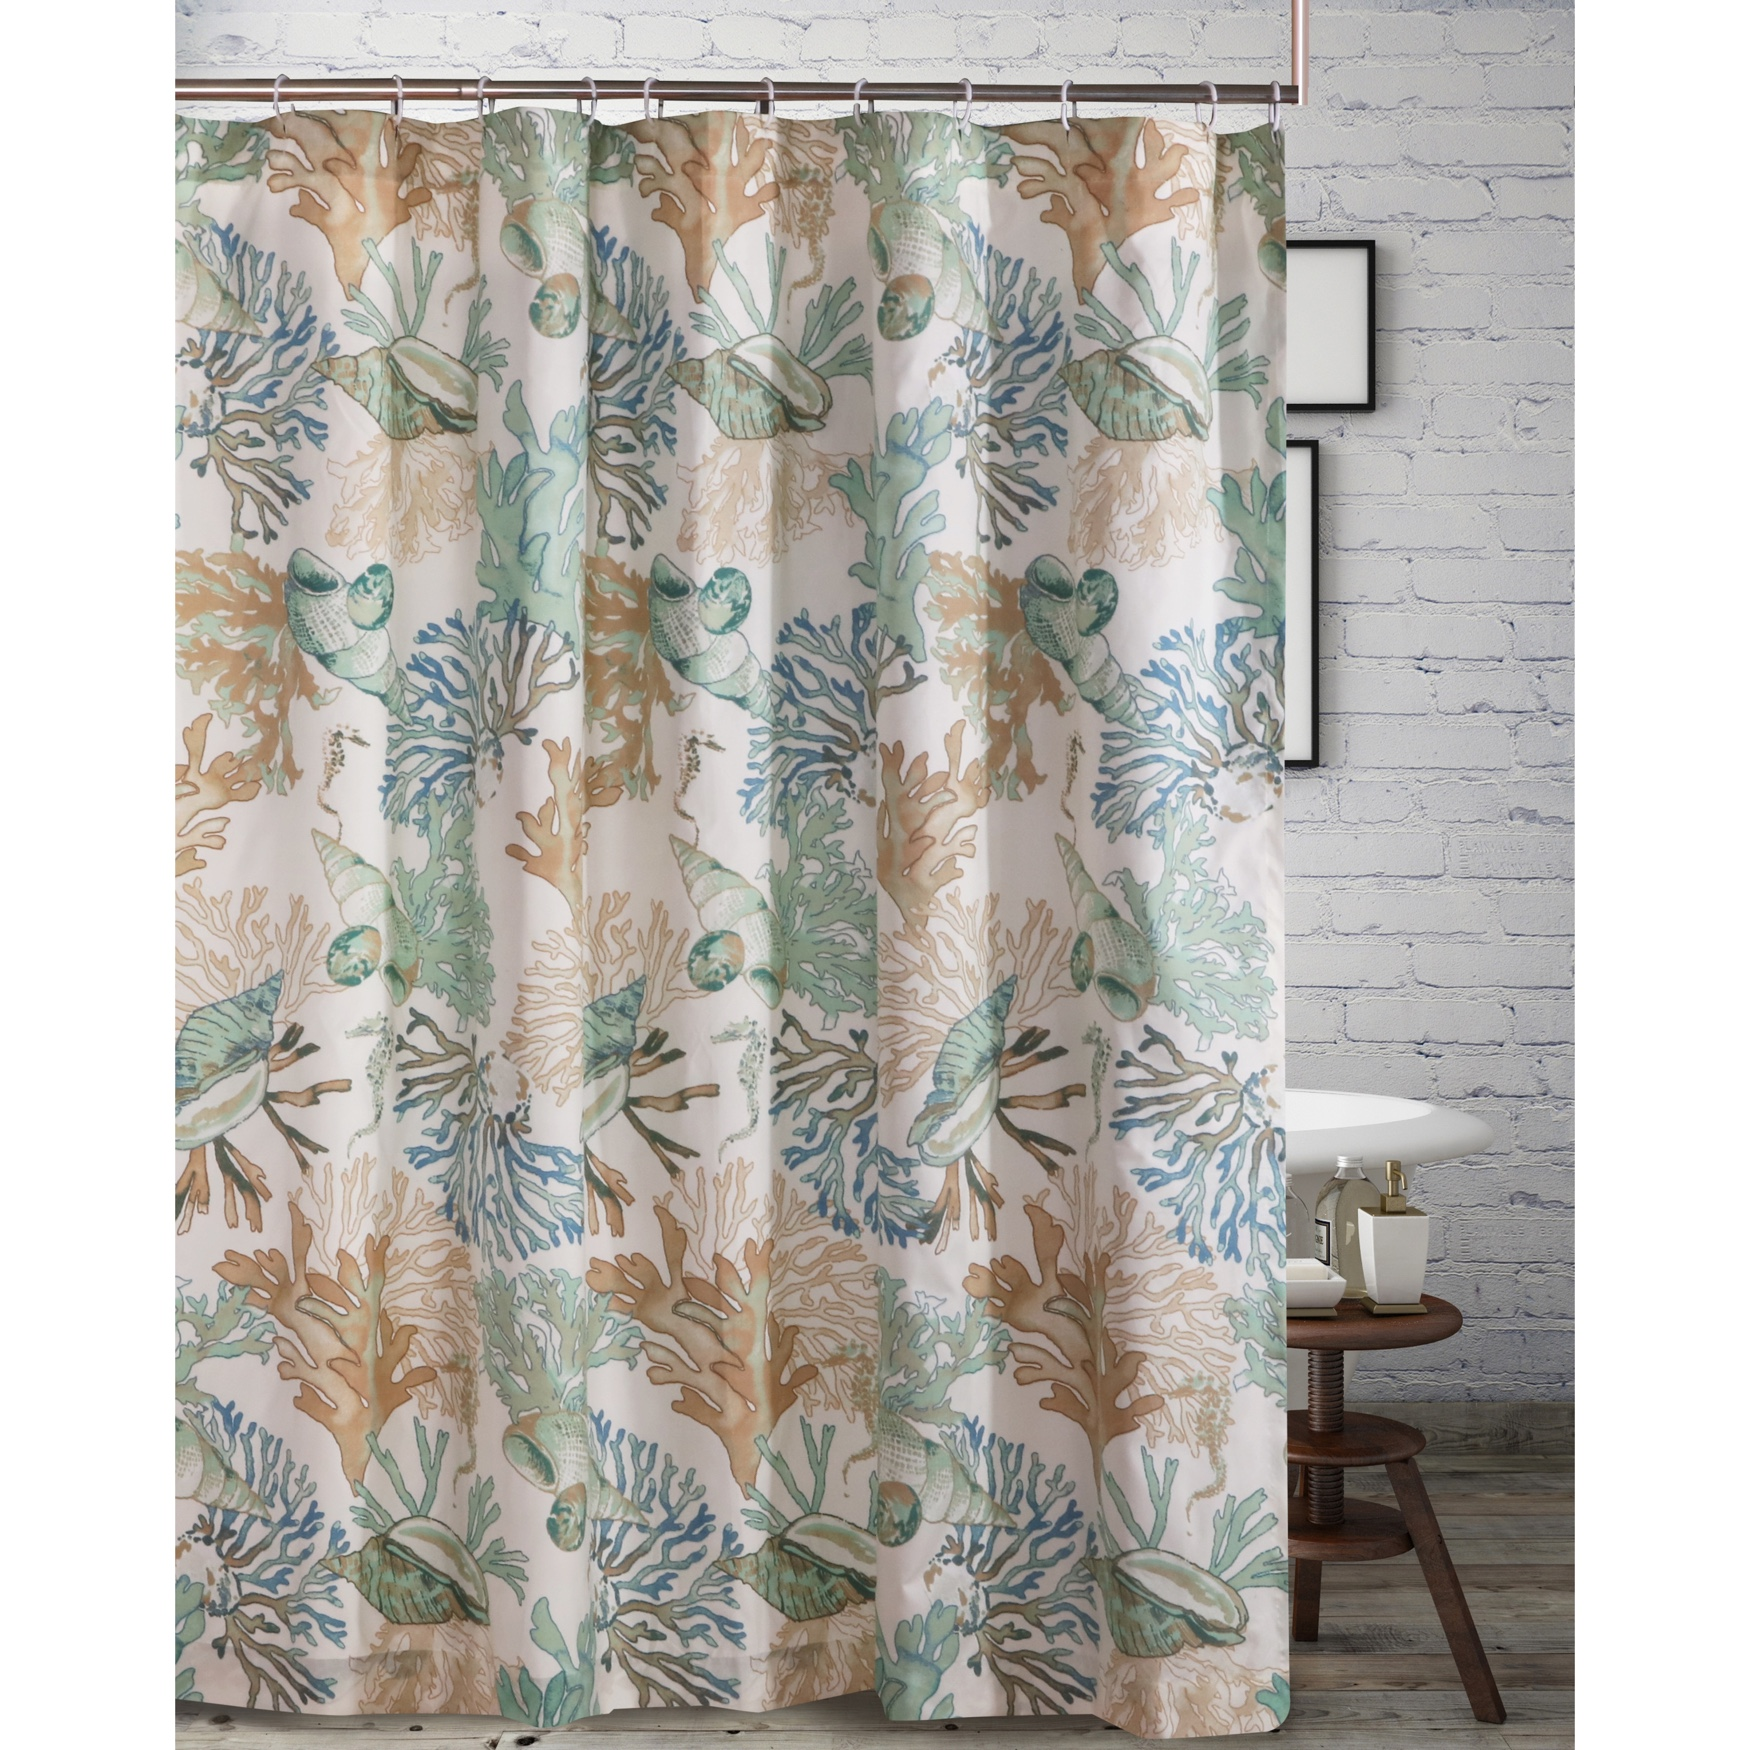 Atlantis Jade Shower Curtain by Barefoot Bungalow, JADE